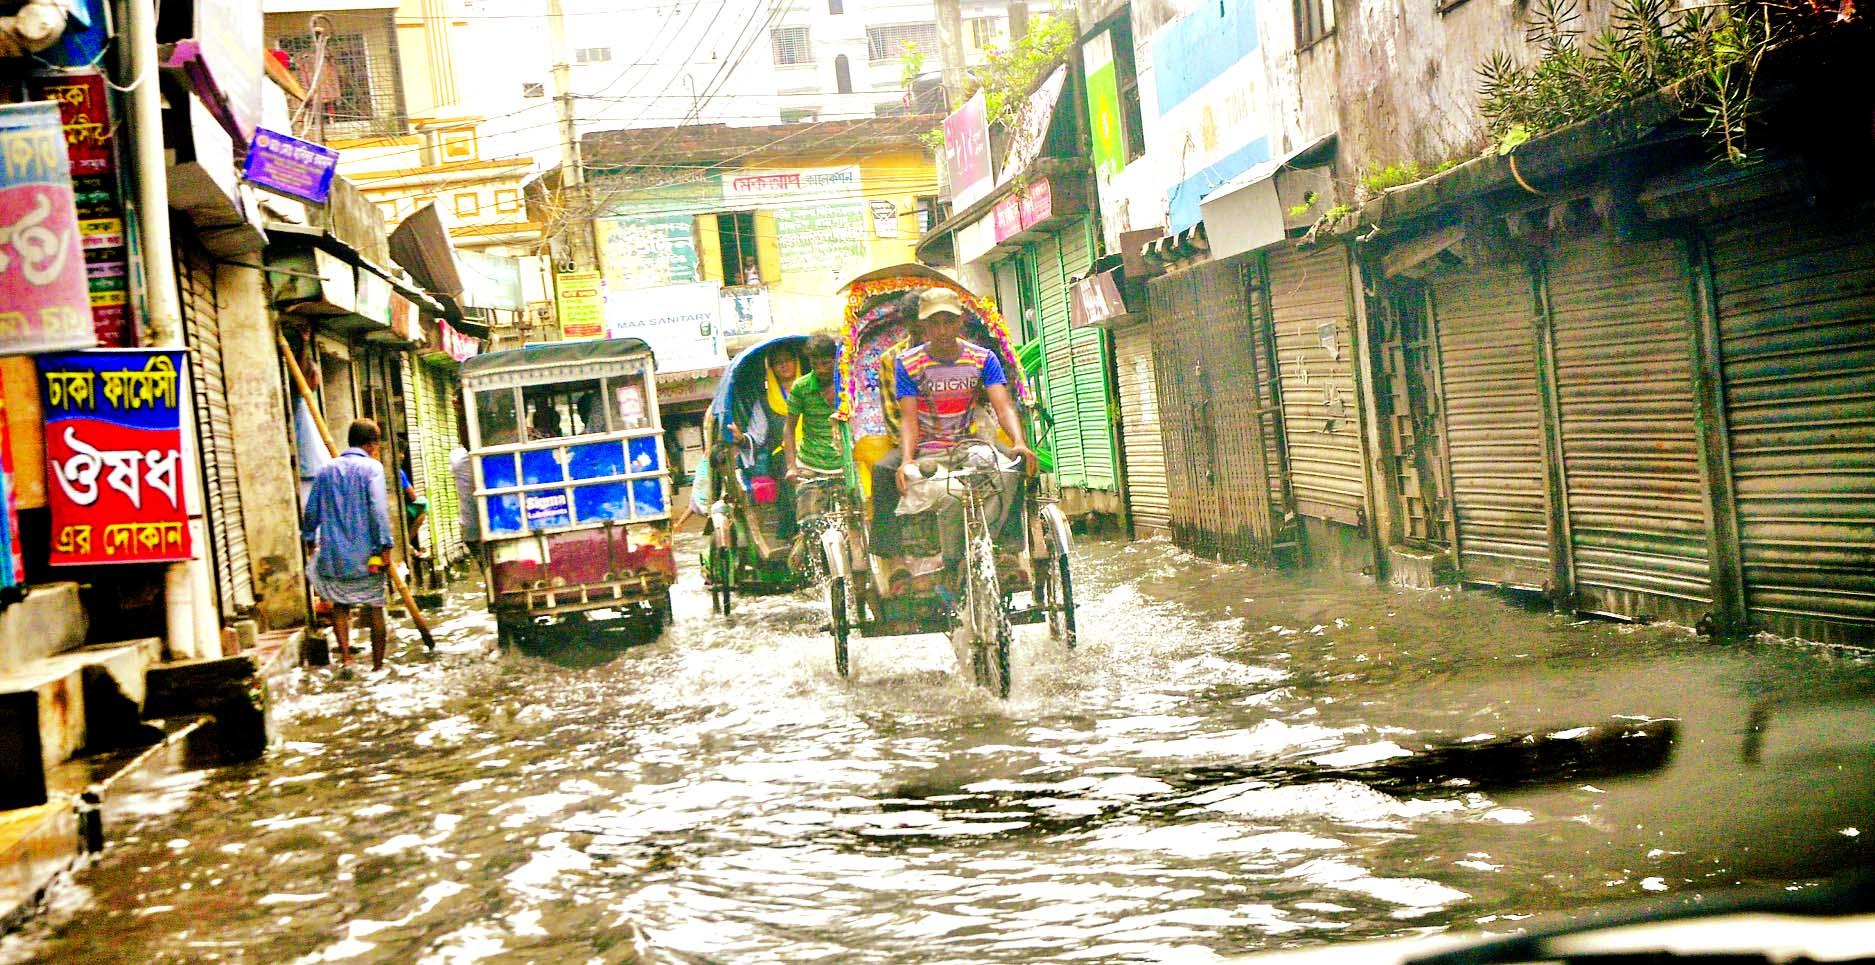 Water-logging a regular phenomenon in city even after a short spell of rain due to poor drainage system causing sufferings to pedestrians and commuters. But the DSCC authorities seem to be indifferent to resolve the issue. This photo was taken from Jurain Commissioner Road on Sunday.